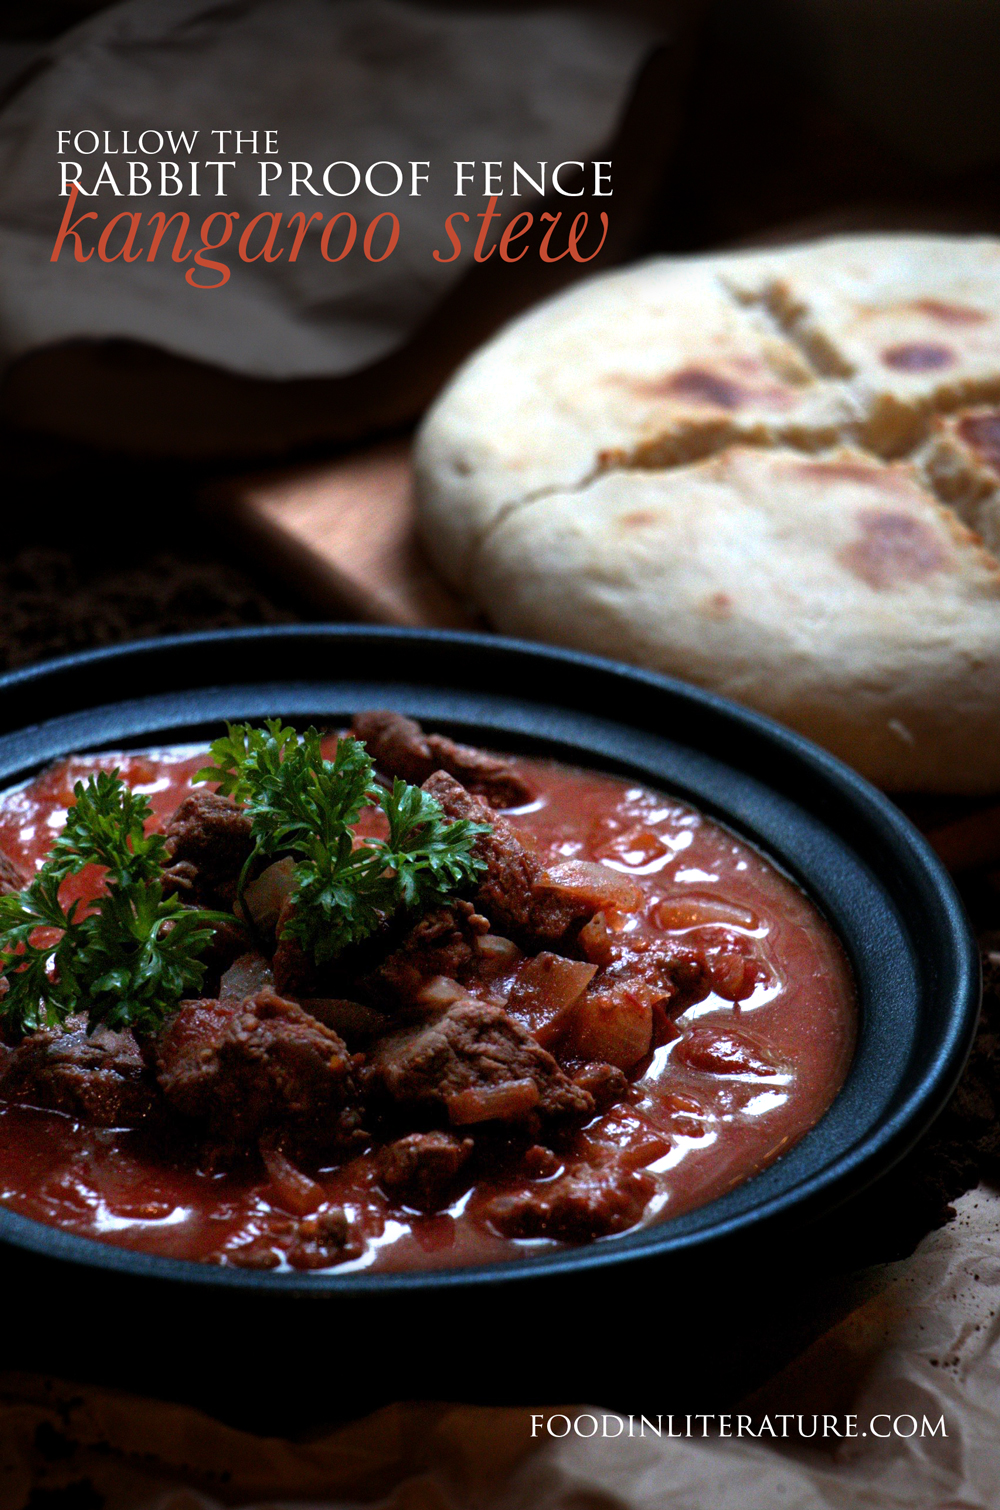 Kangaroo Stew | Follow The Rabbit Proof Fence